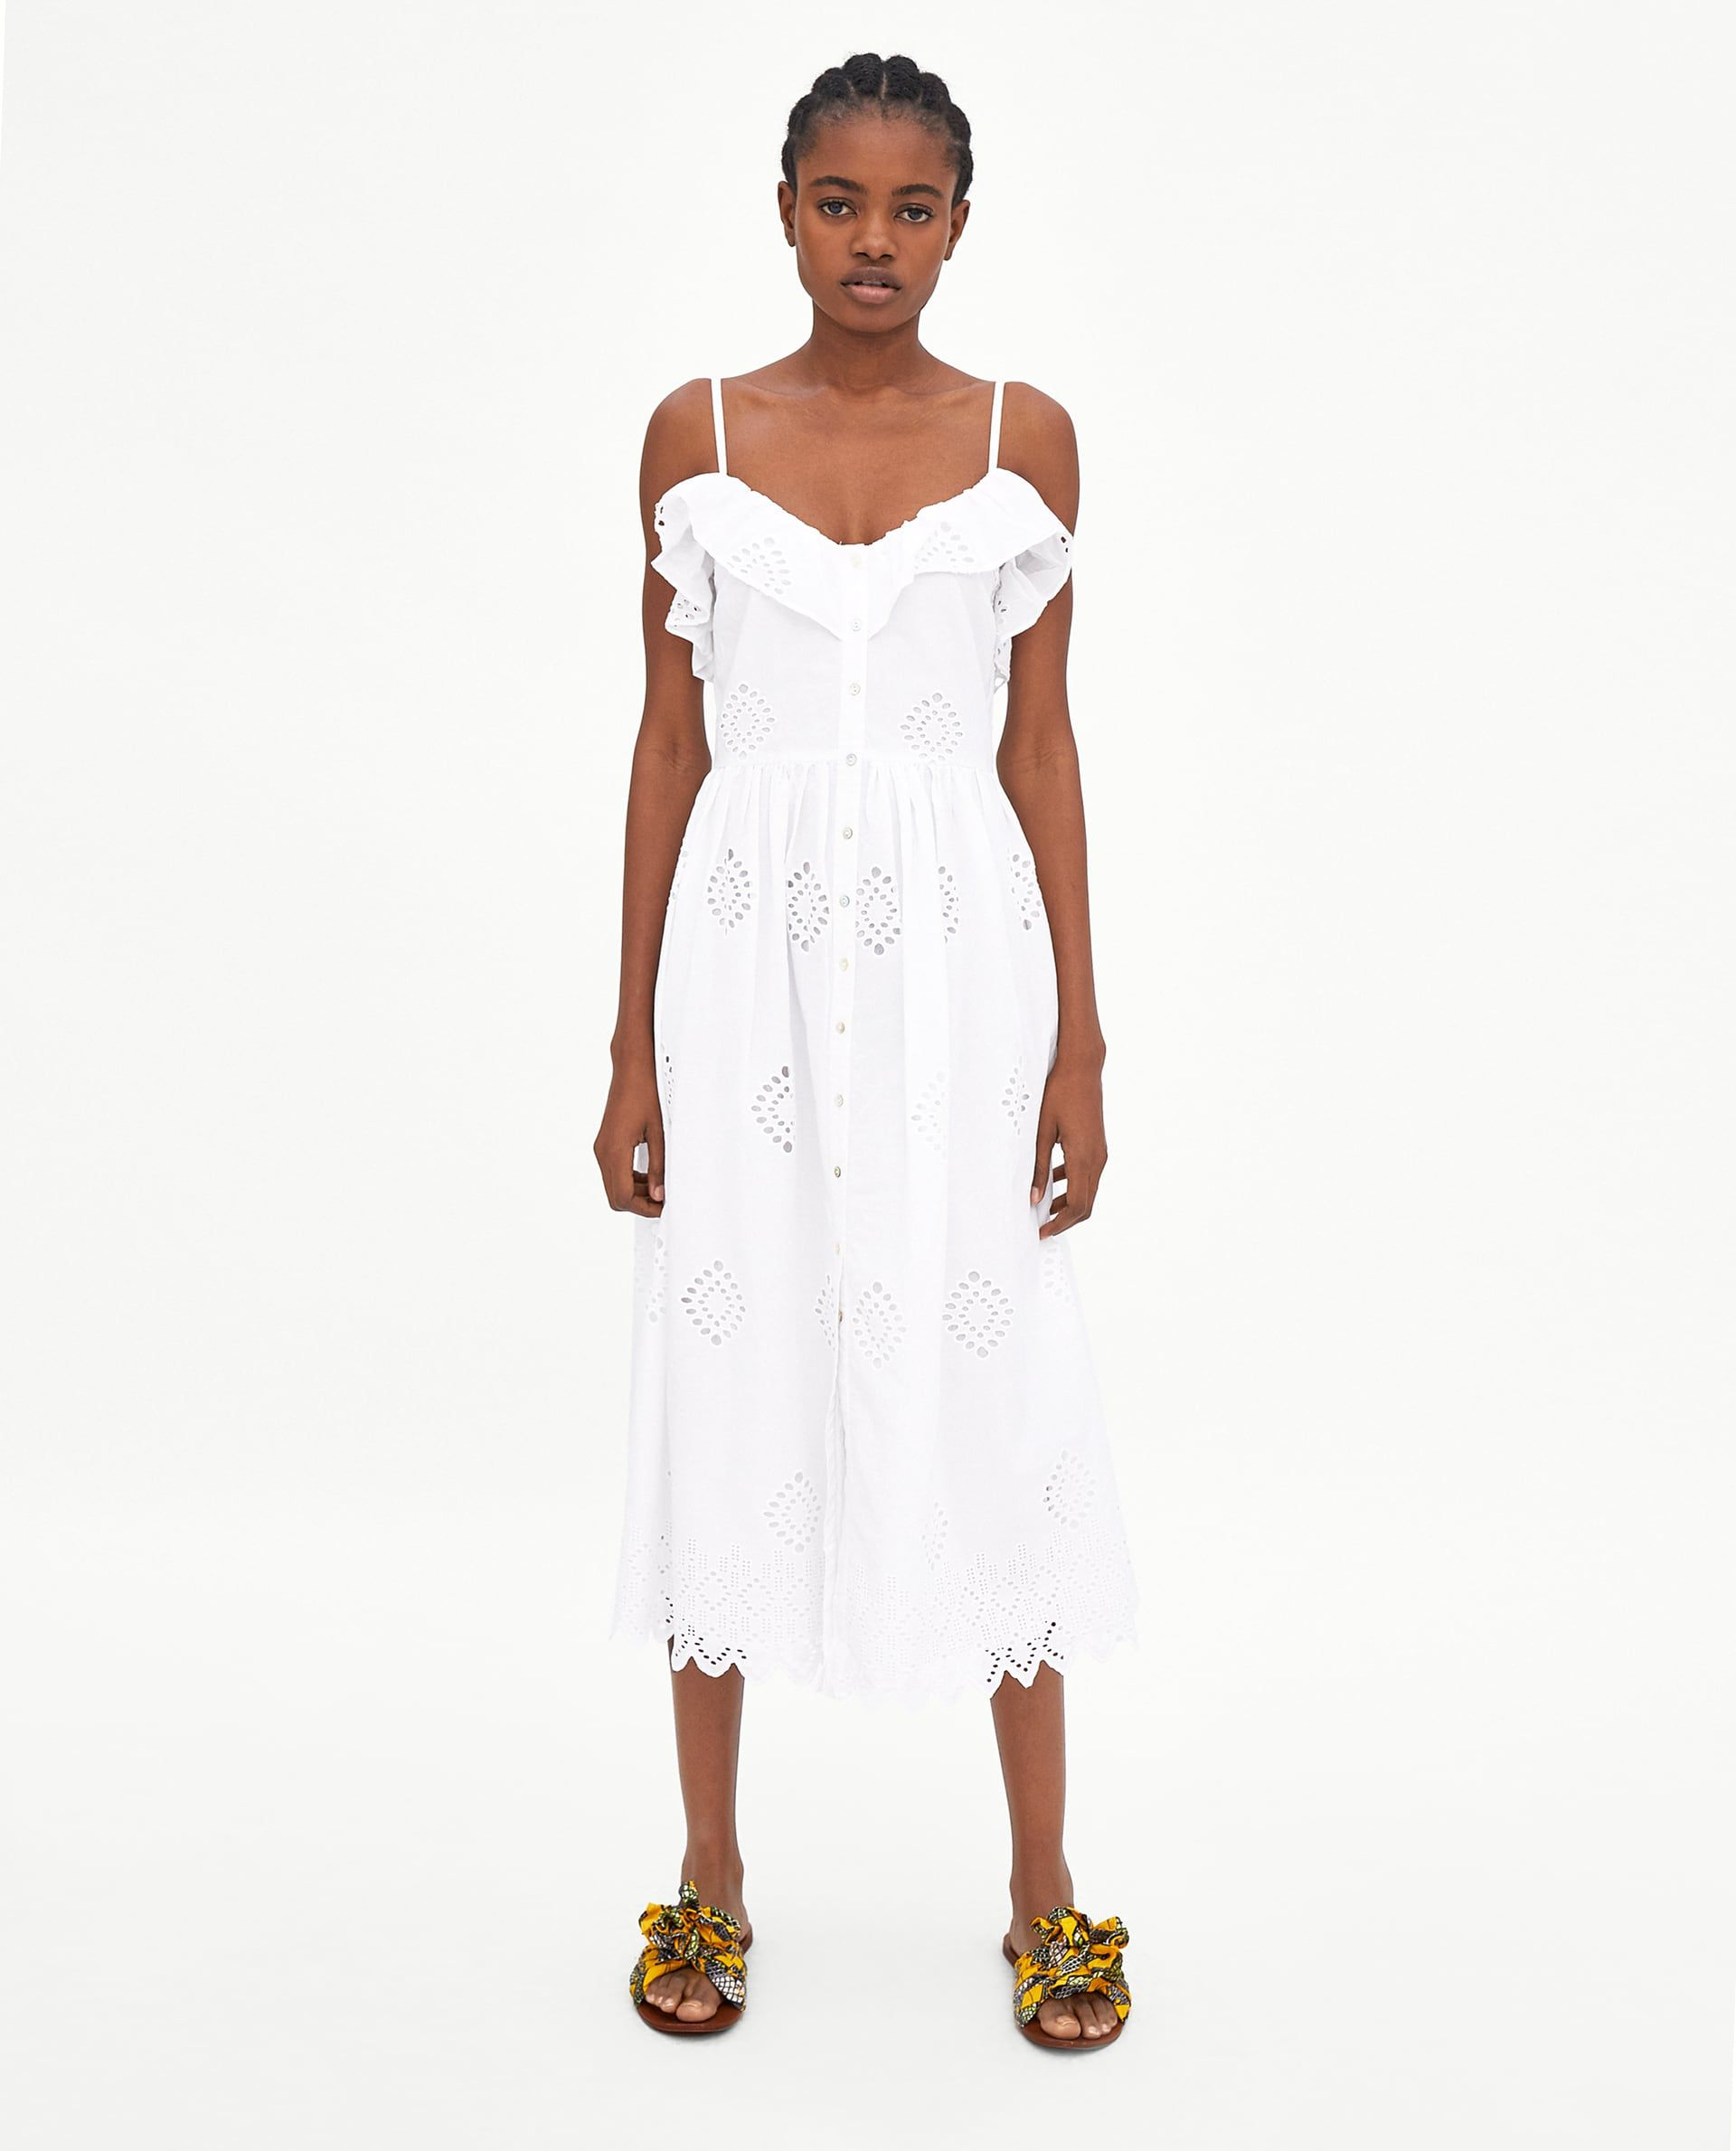 6561ba3e0a63 Image 1 of PERFORATED DRESS WITH EMBROIDERY from Zara